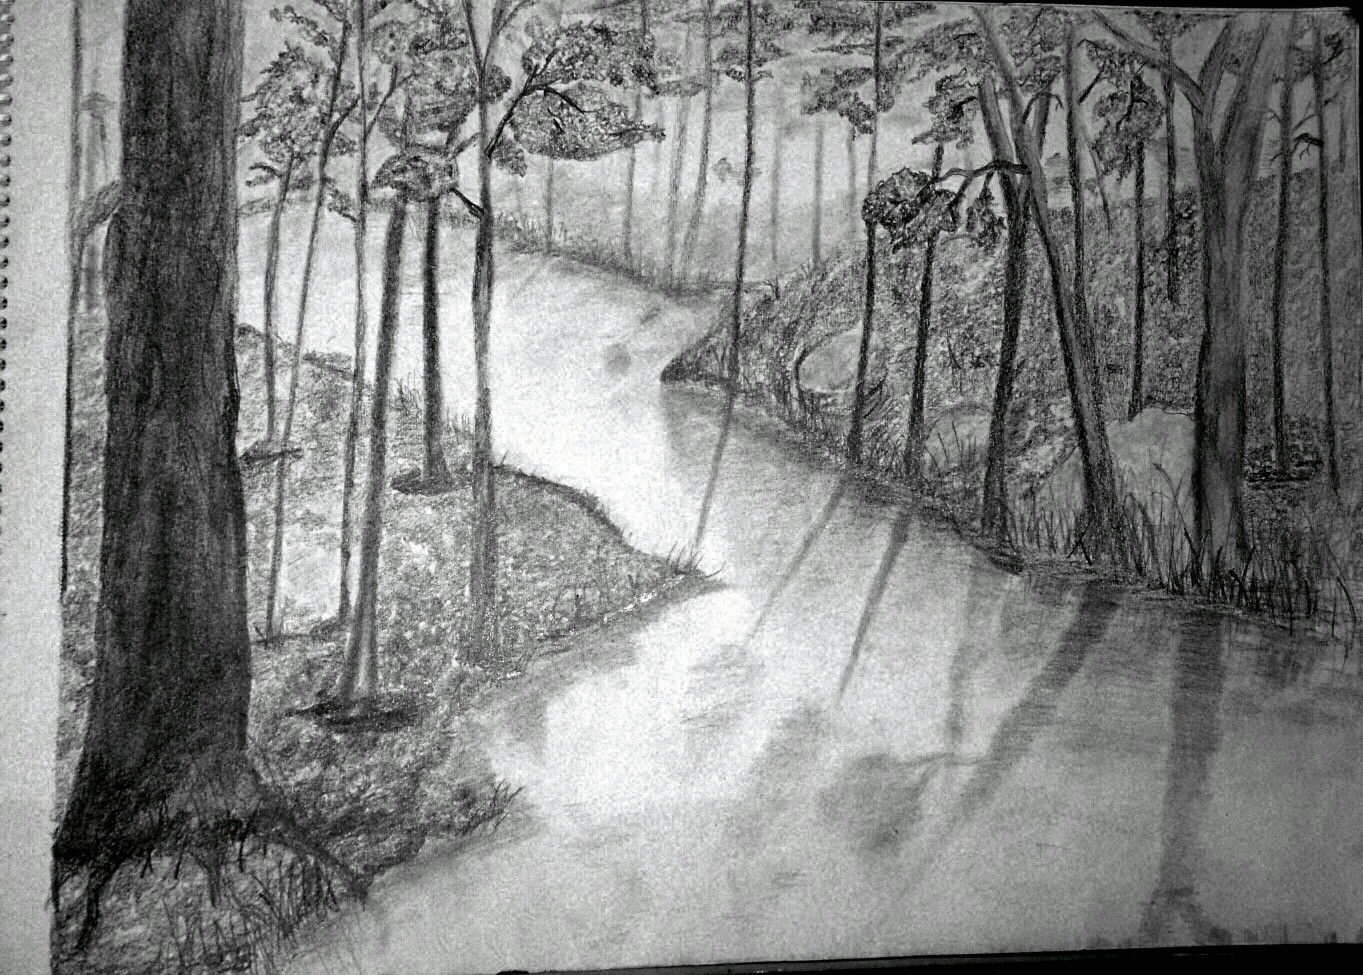 Pencil sketch of forest | Art, Artwork, Painting